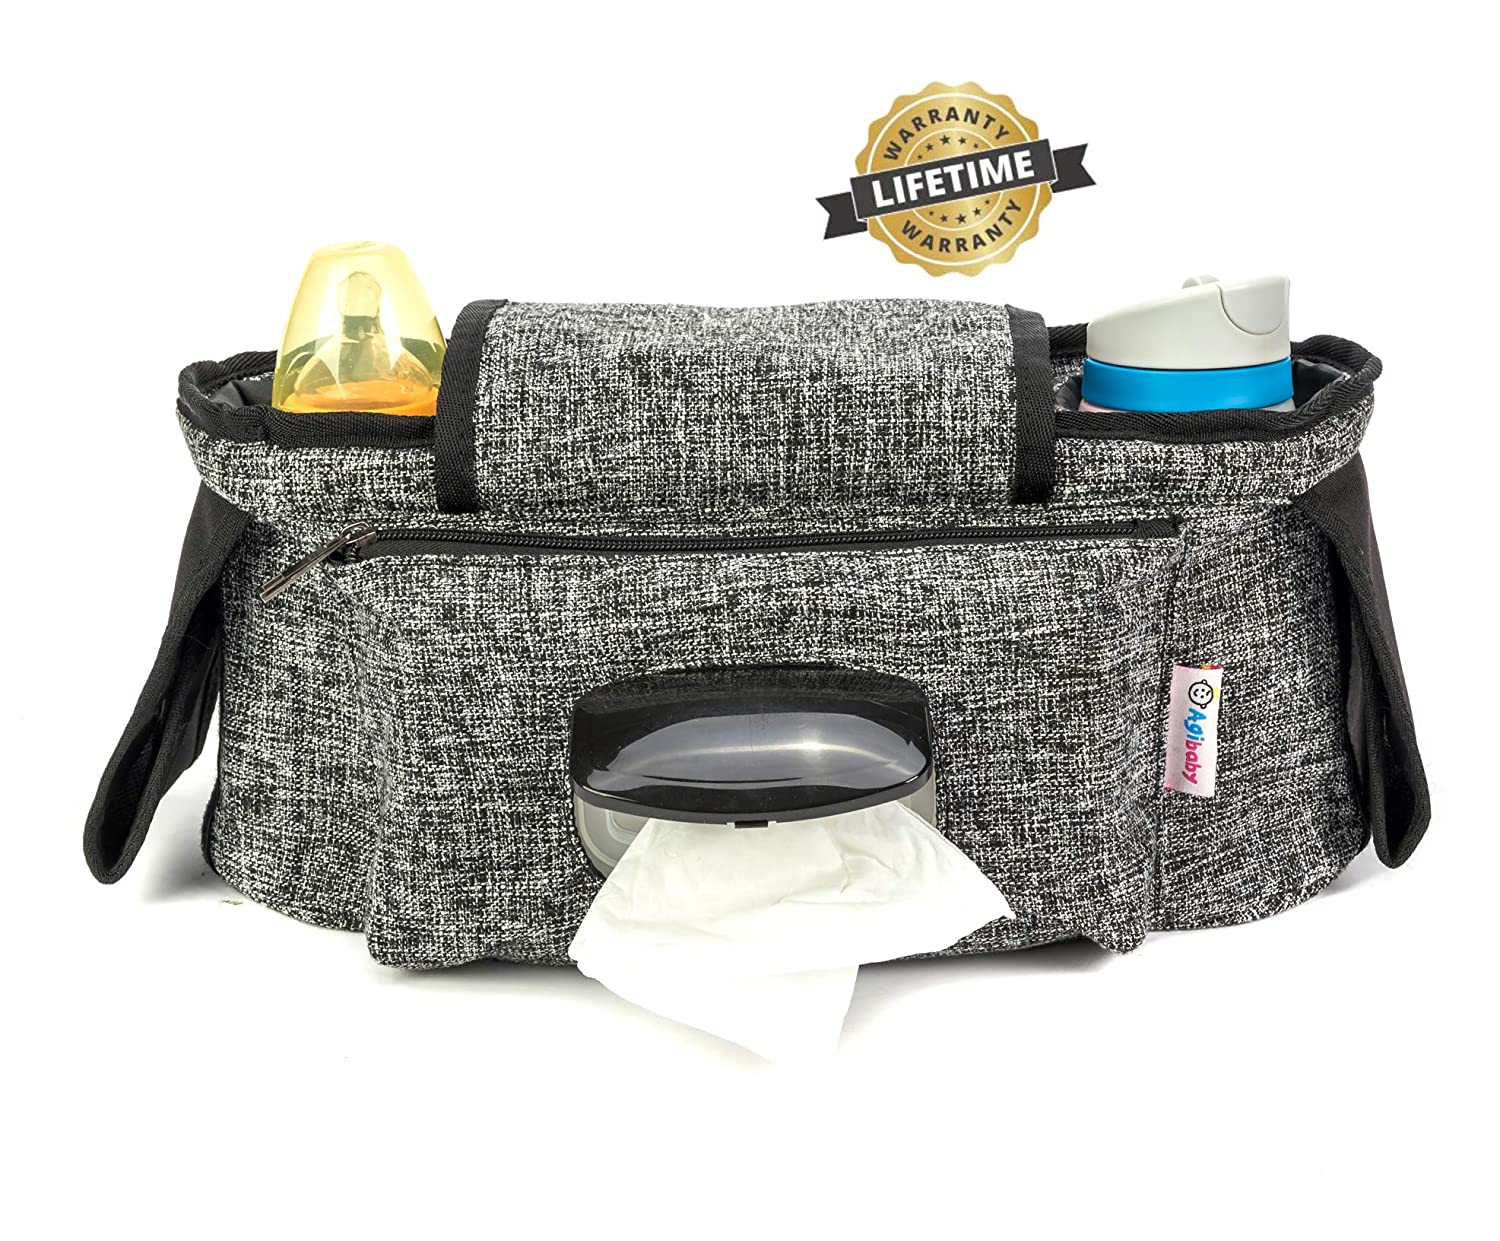 Agibaby Stroller Organizer, Insulated Deep Cup Holders, Instant Access Wipe Pocket, Universal Strap Fit, Large Storage Space for Diapers & Phone